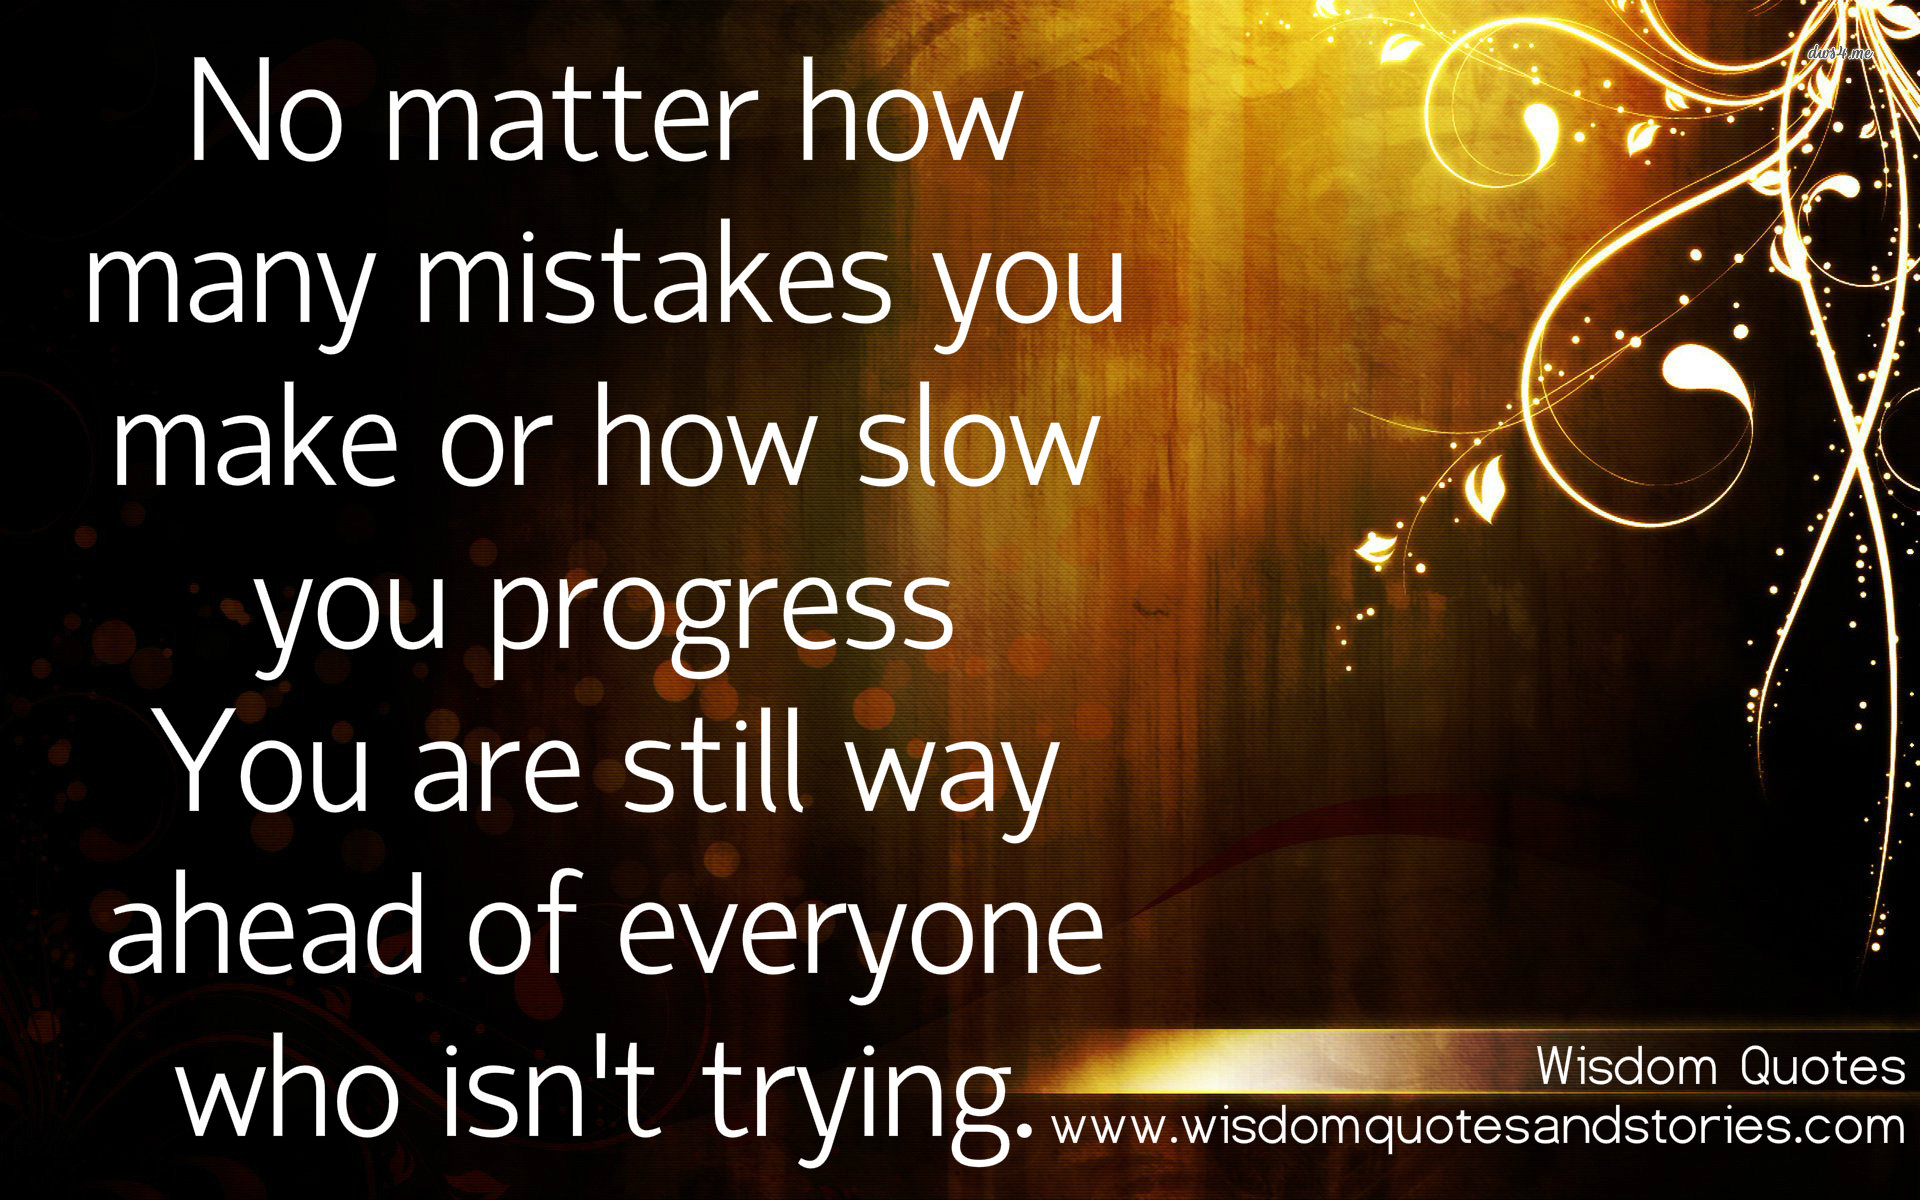 No matter how many mistakes you make , you are way ahead of everyone who isn't trying.